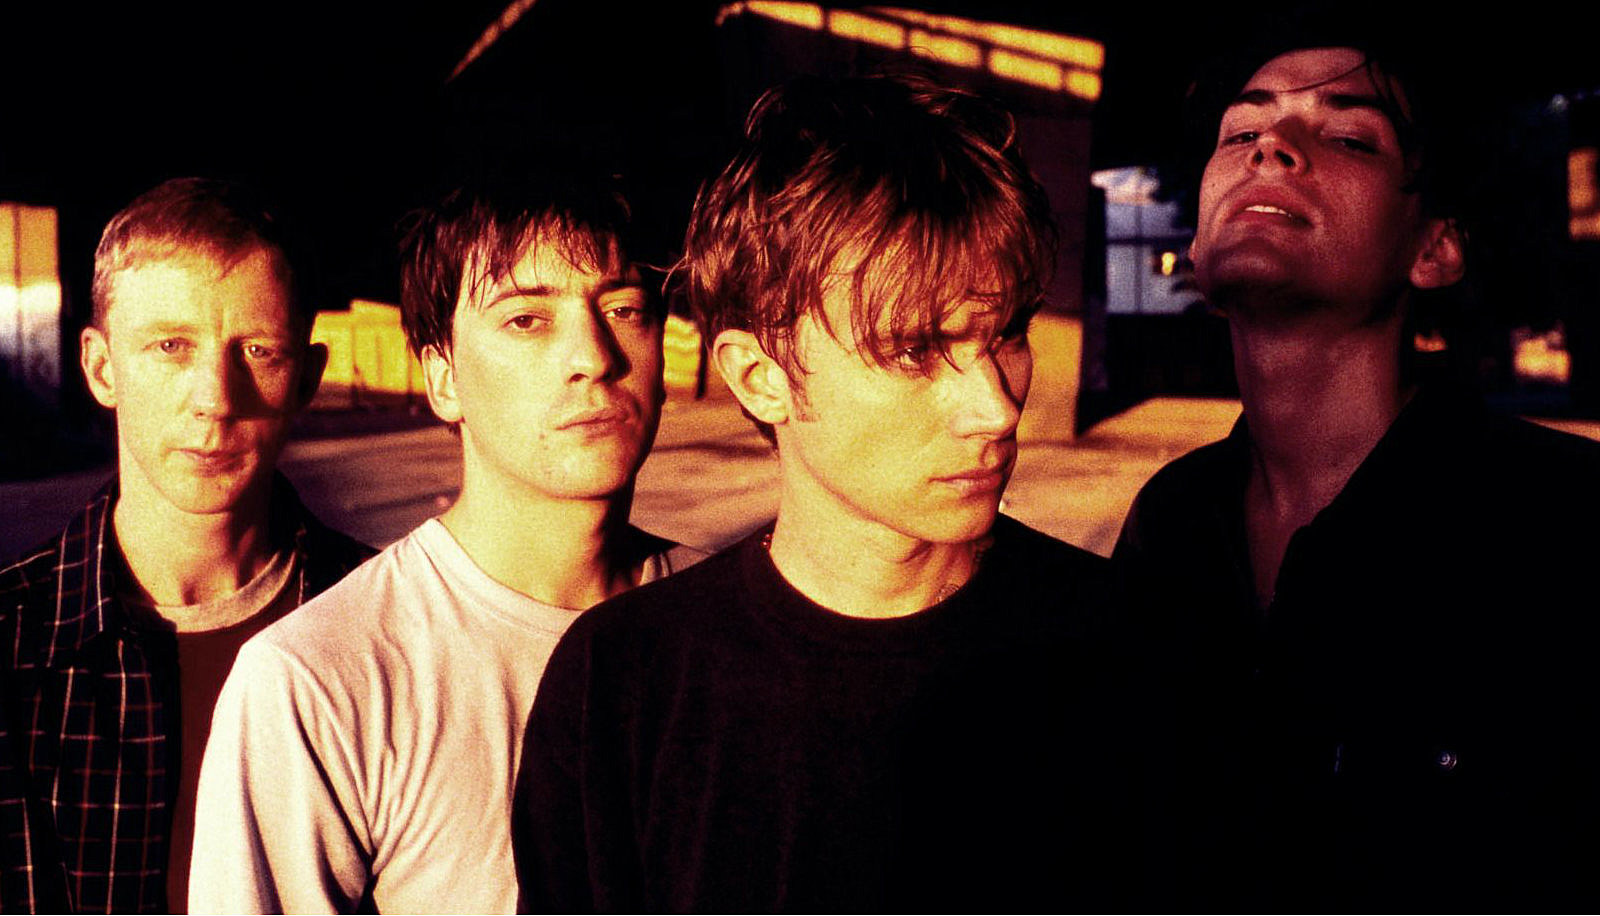 18af5657 22 Years Ago: Blur Release the Britpop Battle Cry 'Parklife'